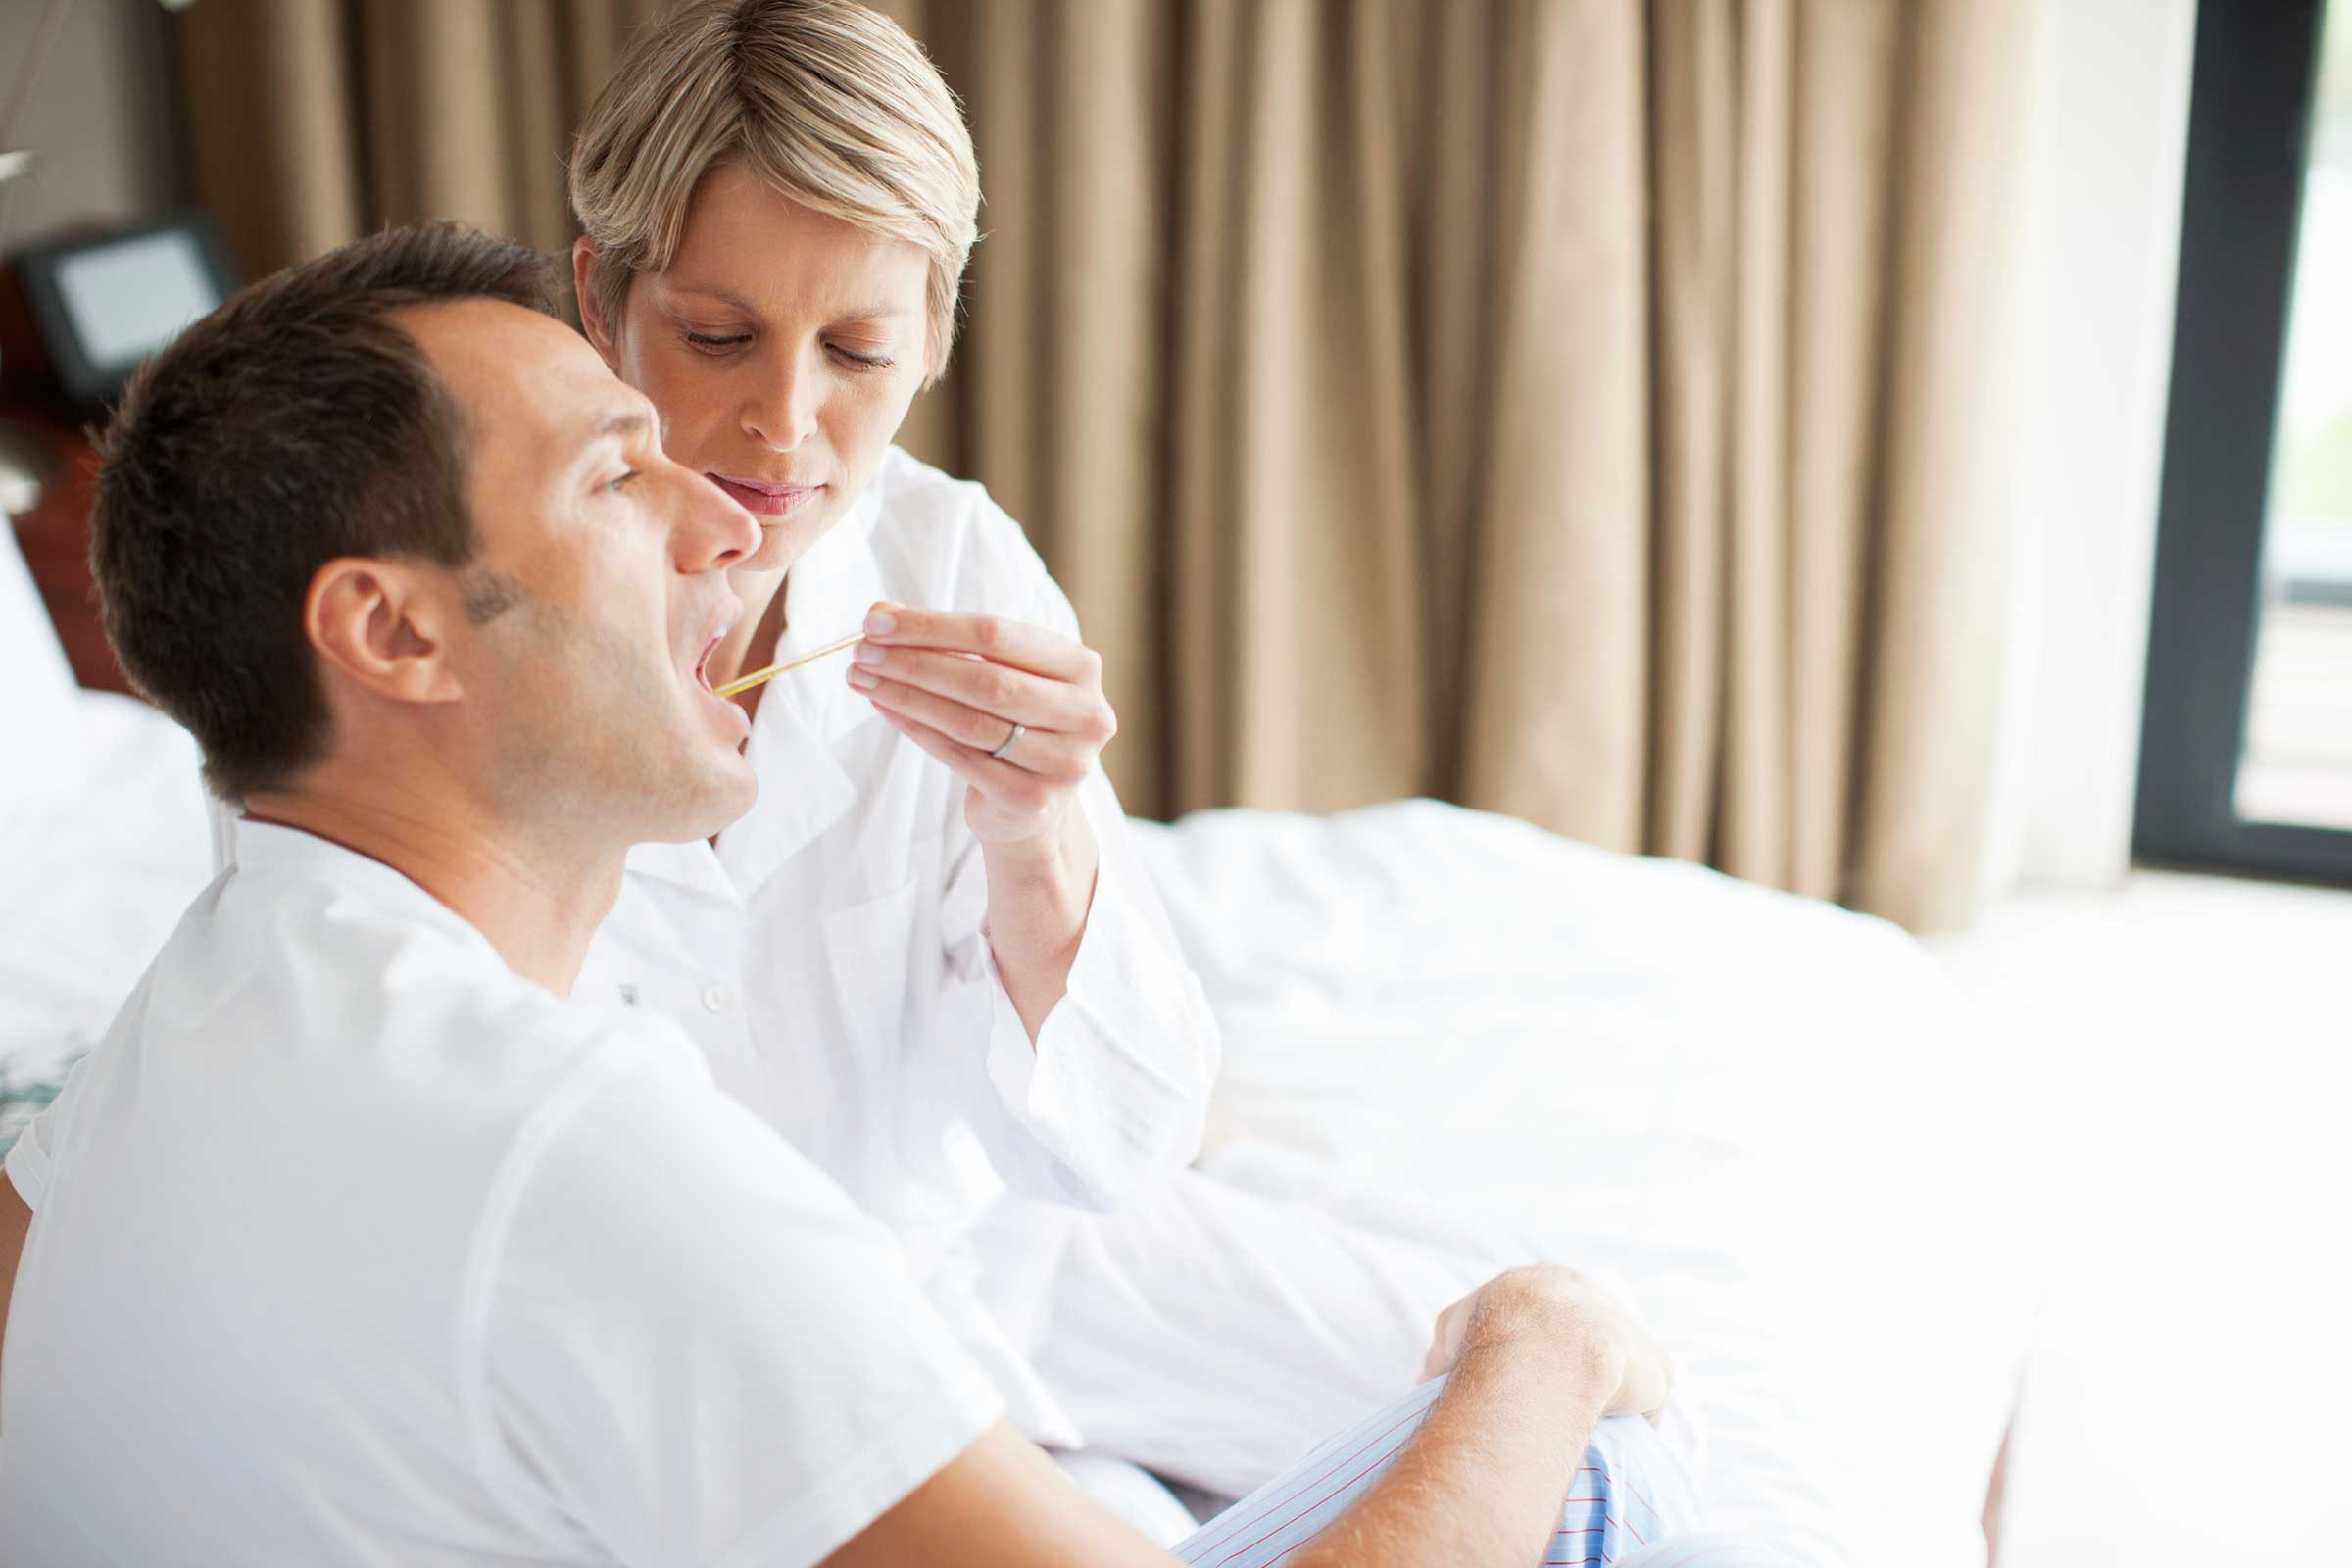 Cold and Flu Etiquette: 7 Things You Can Do To Stay Well